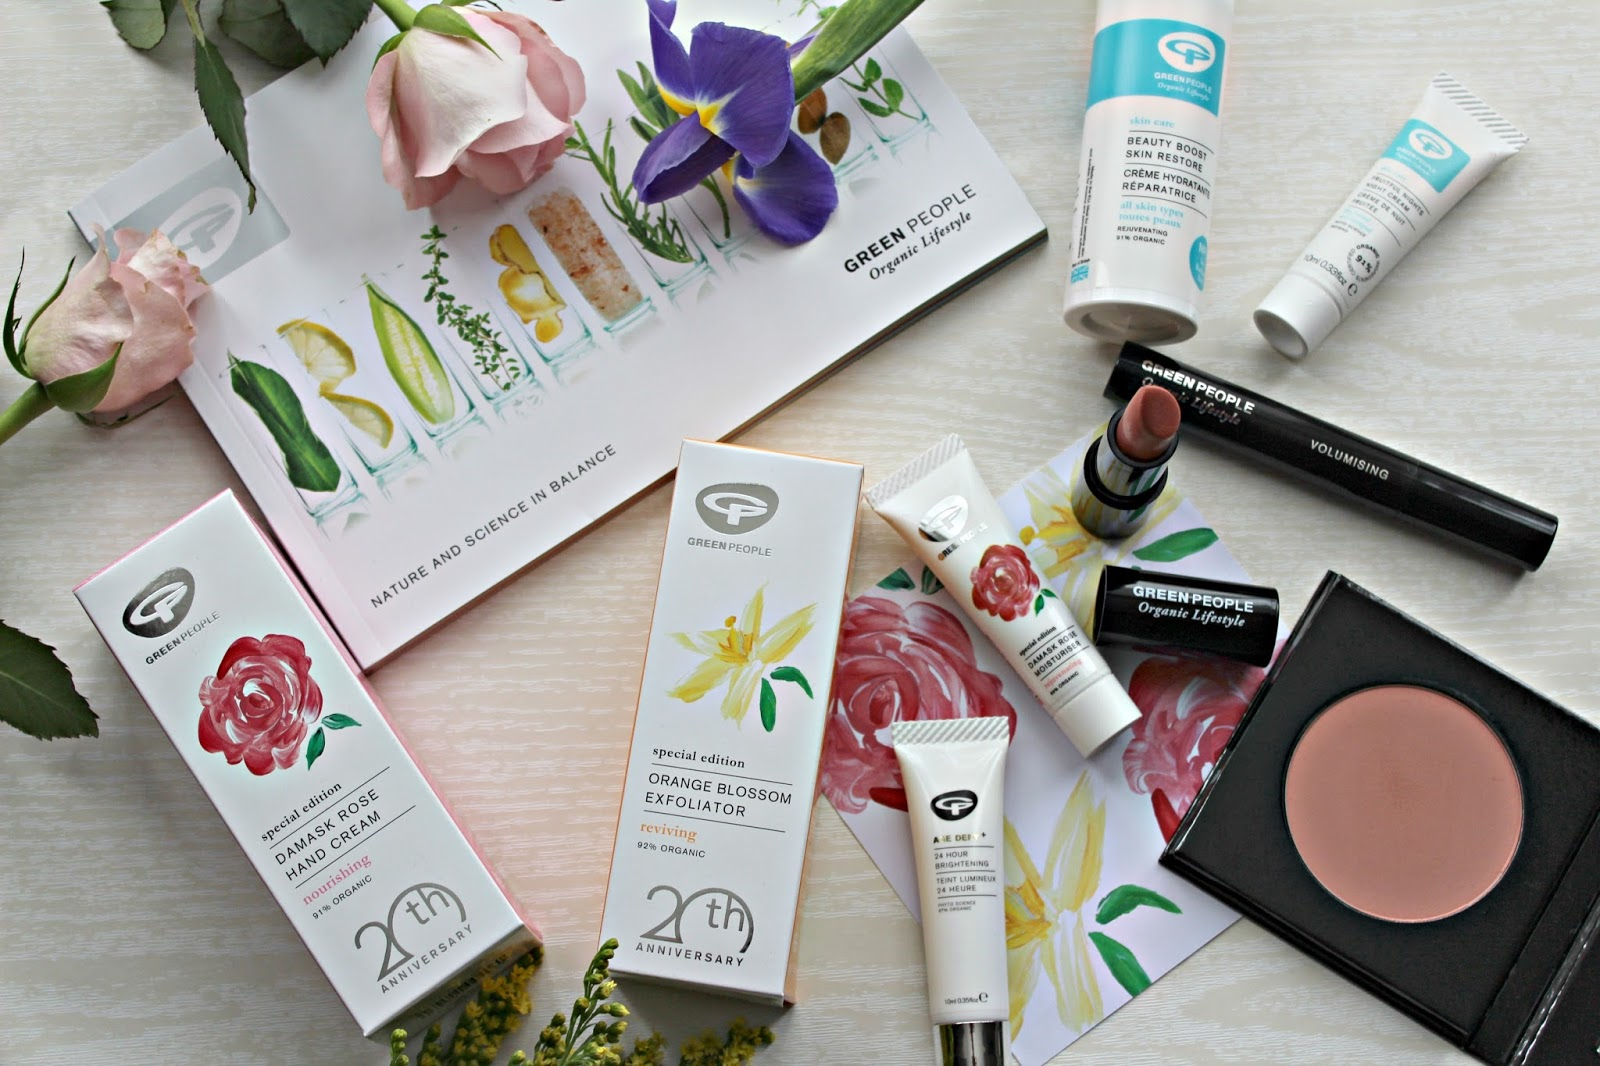 Celebrating 20 years of natural beauty with Green People